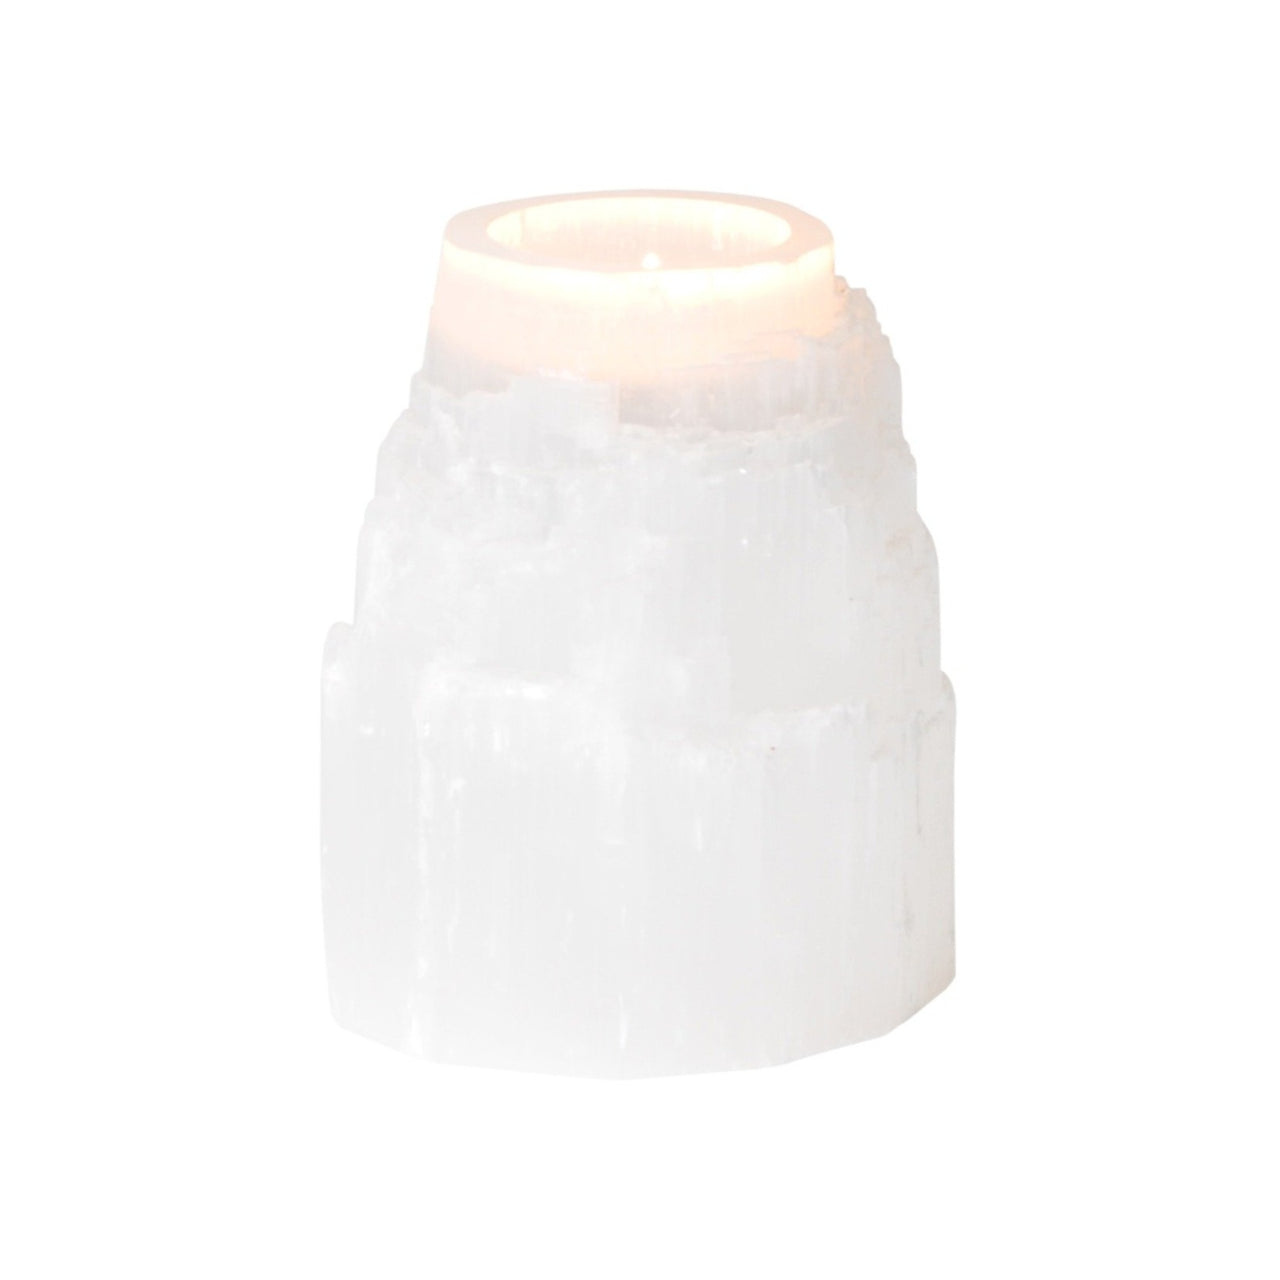 Selenite Tower Tea-light Holder